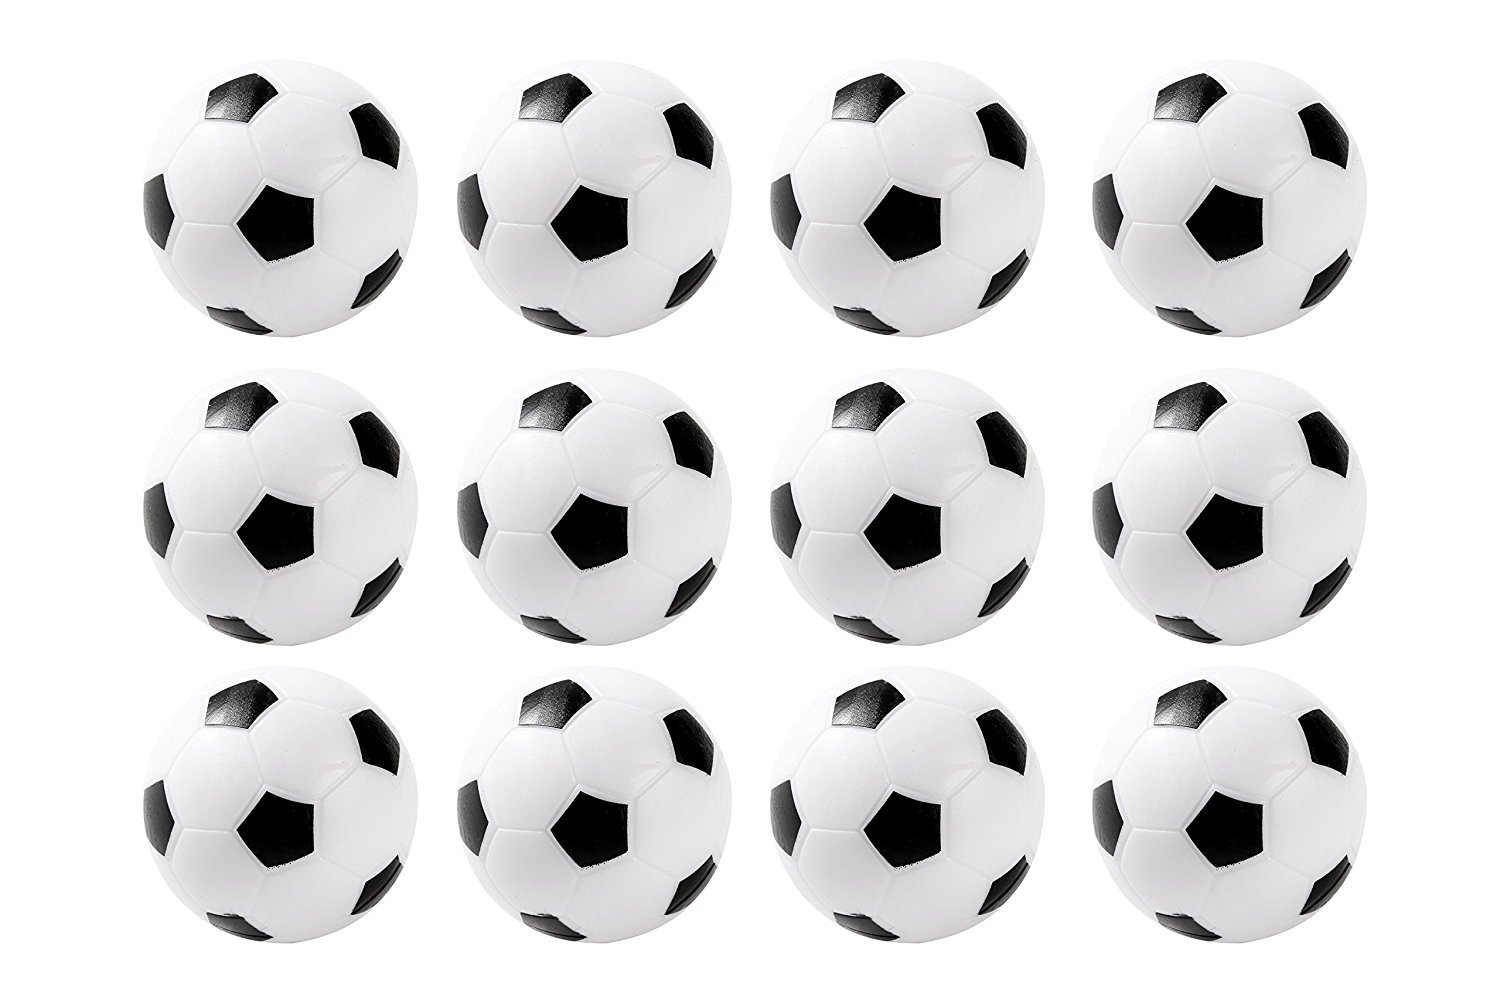 BESTIM INCUK 36mm Table Soccer Foosballs Replacements Mini Football Balls, Black and White, Set of 12